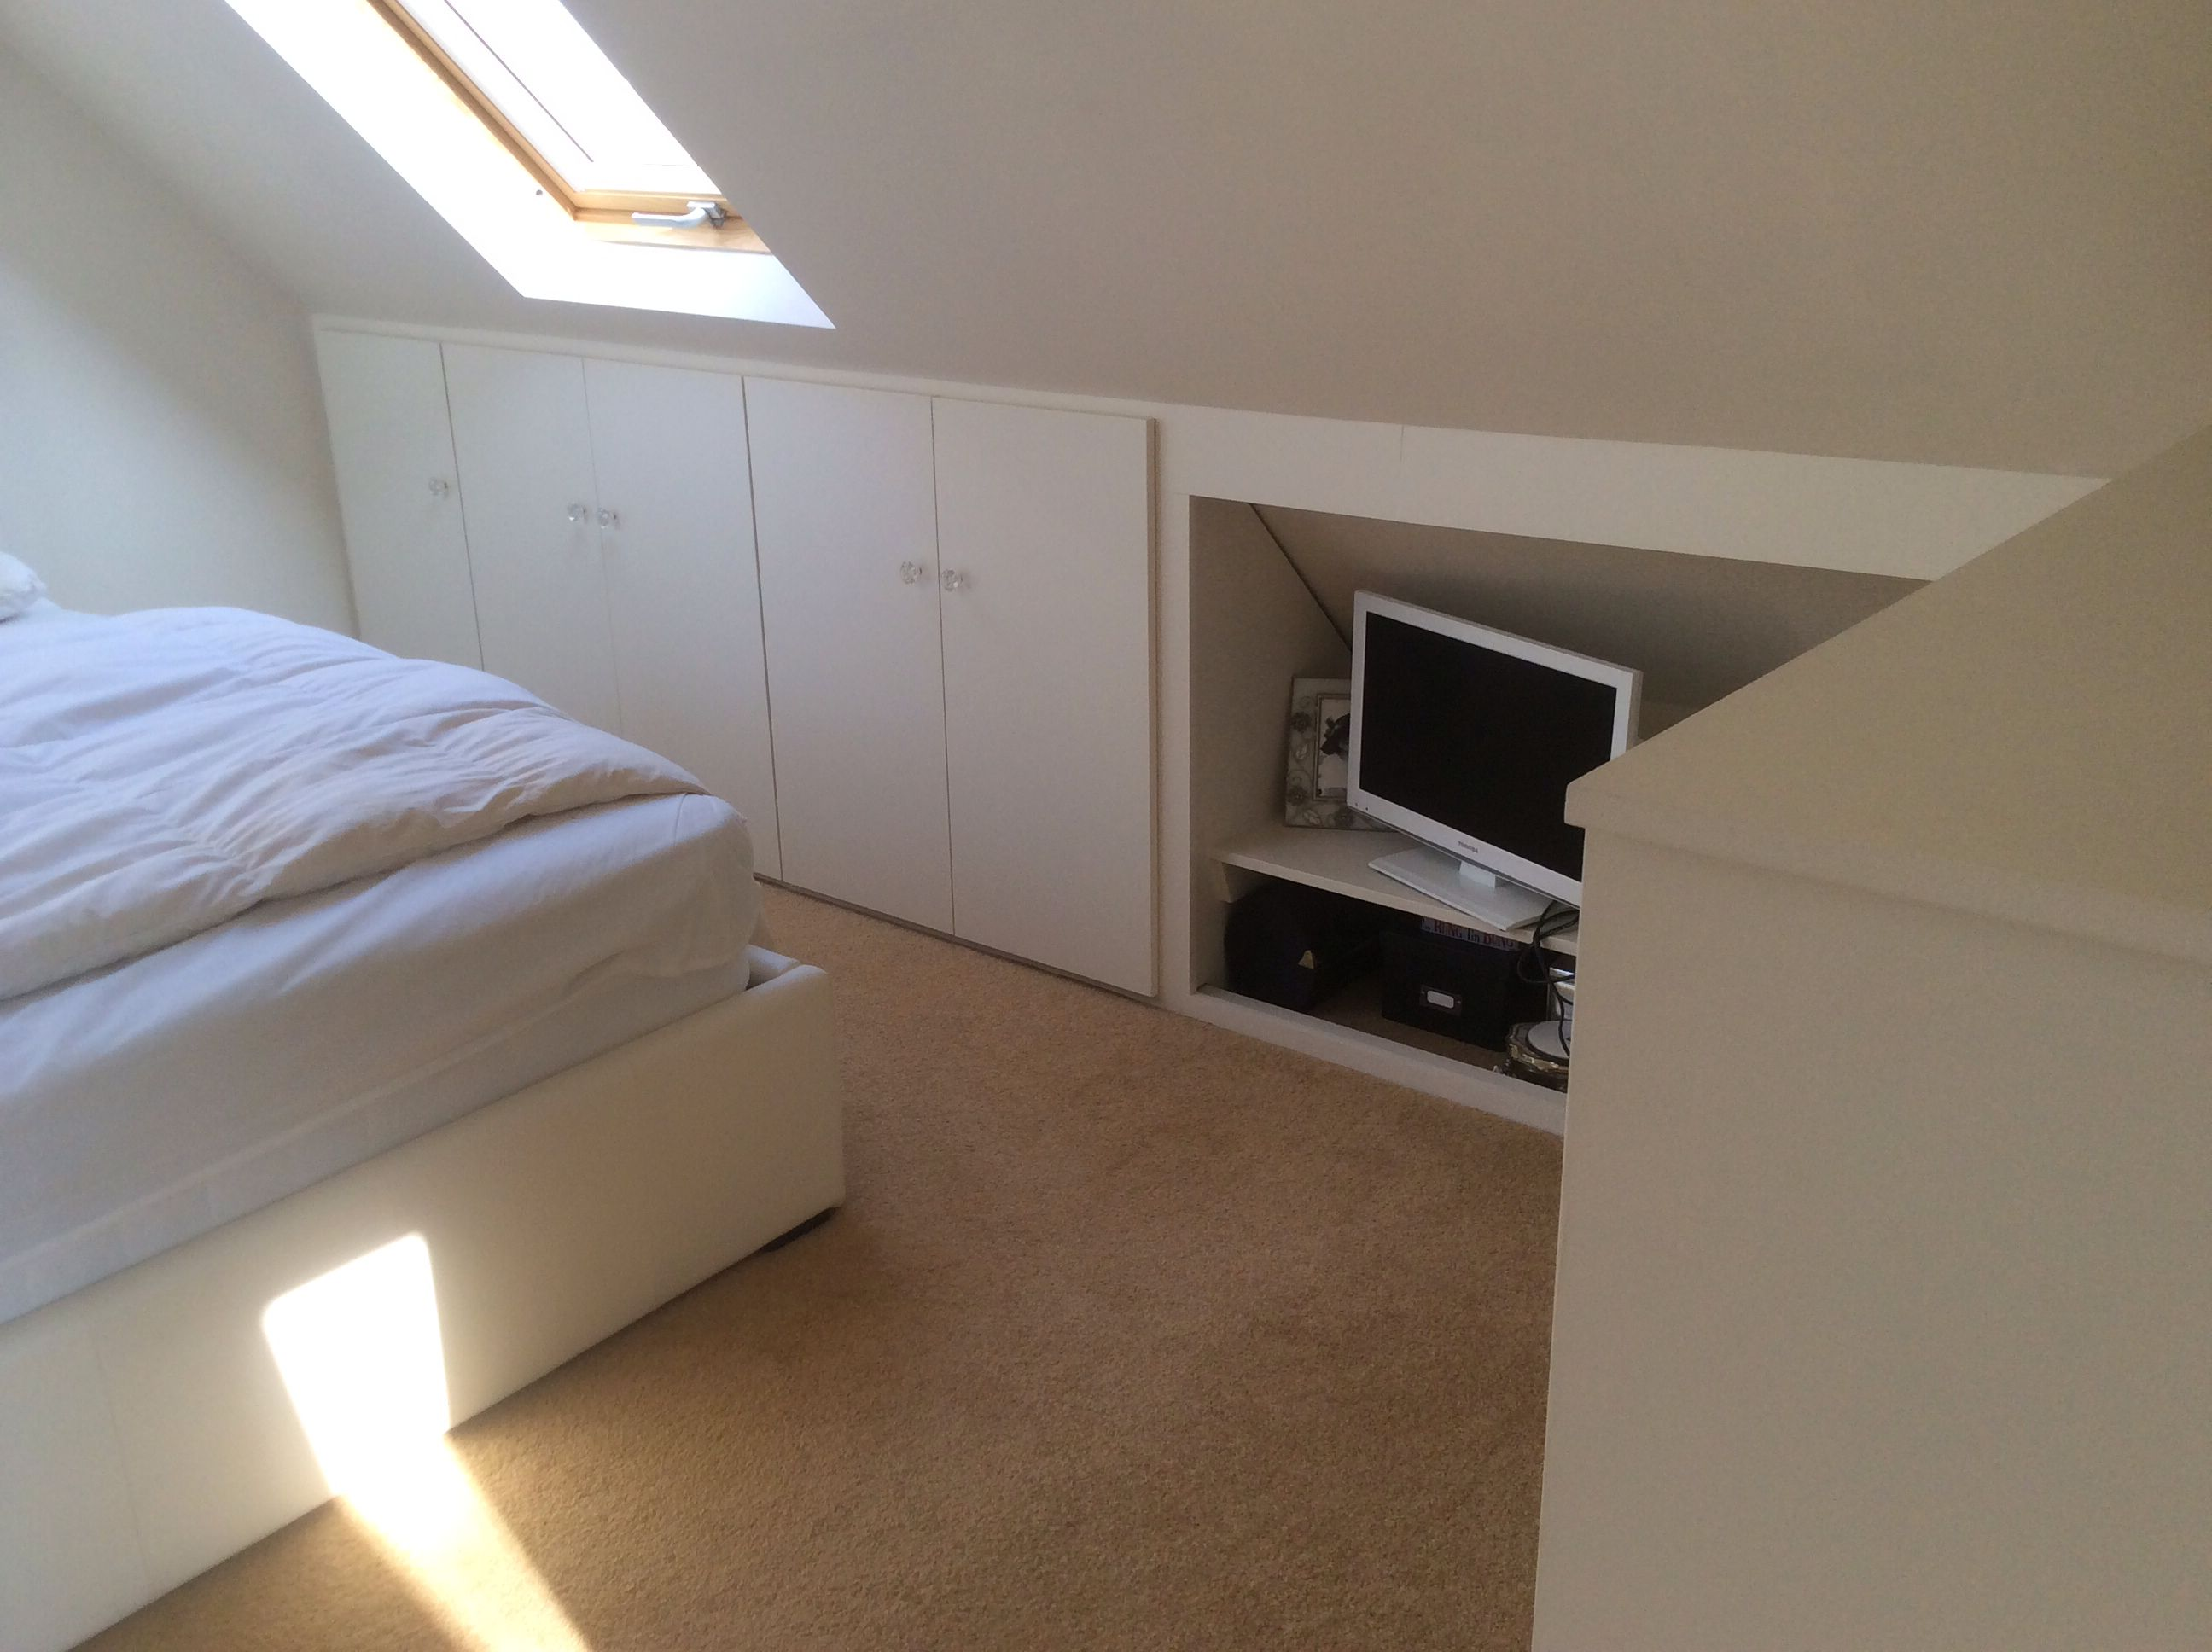 Loft Fitted Storage Cabinets - Designed To Work Eaves And